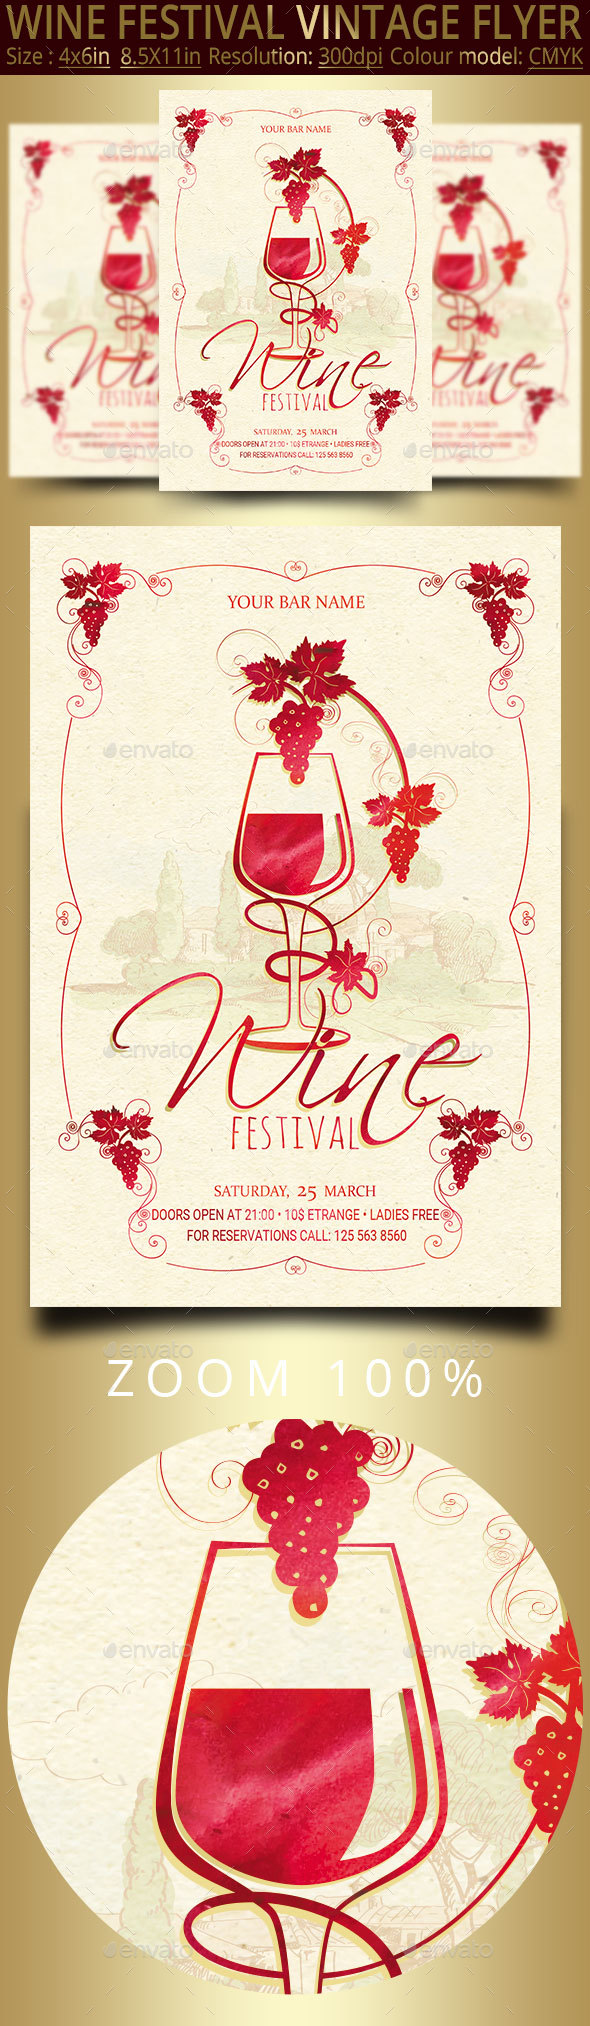 Wine Festival Vintage Flyer - Events Flyers